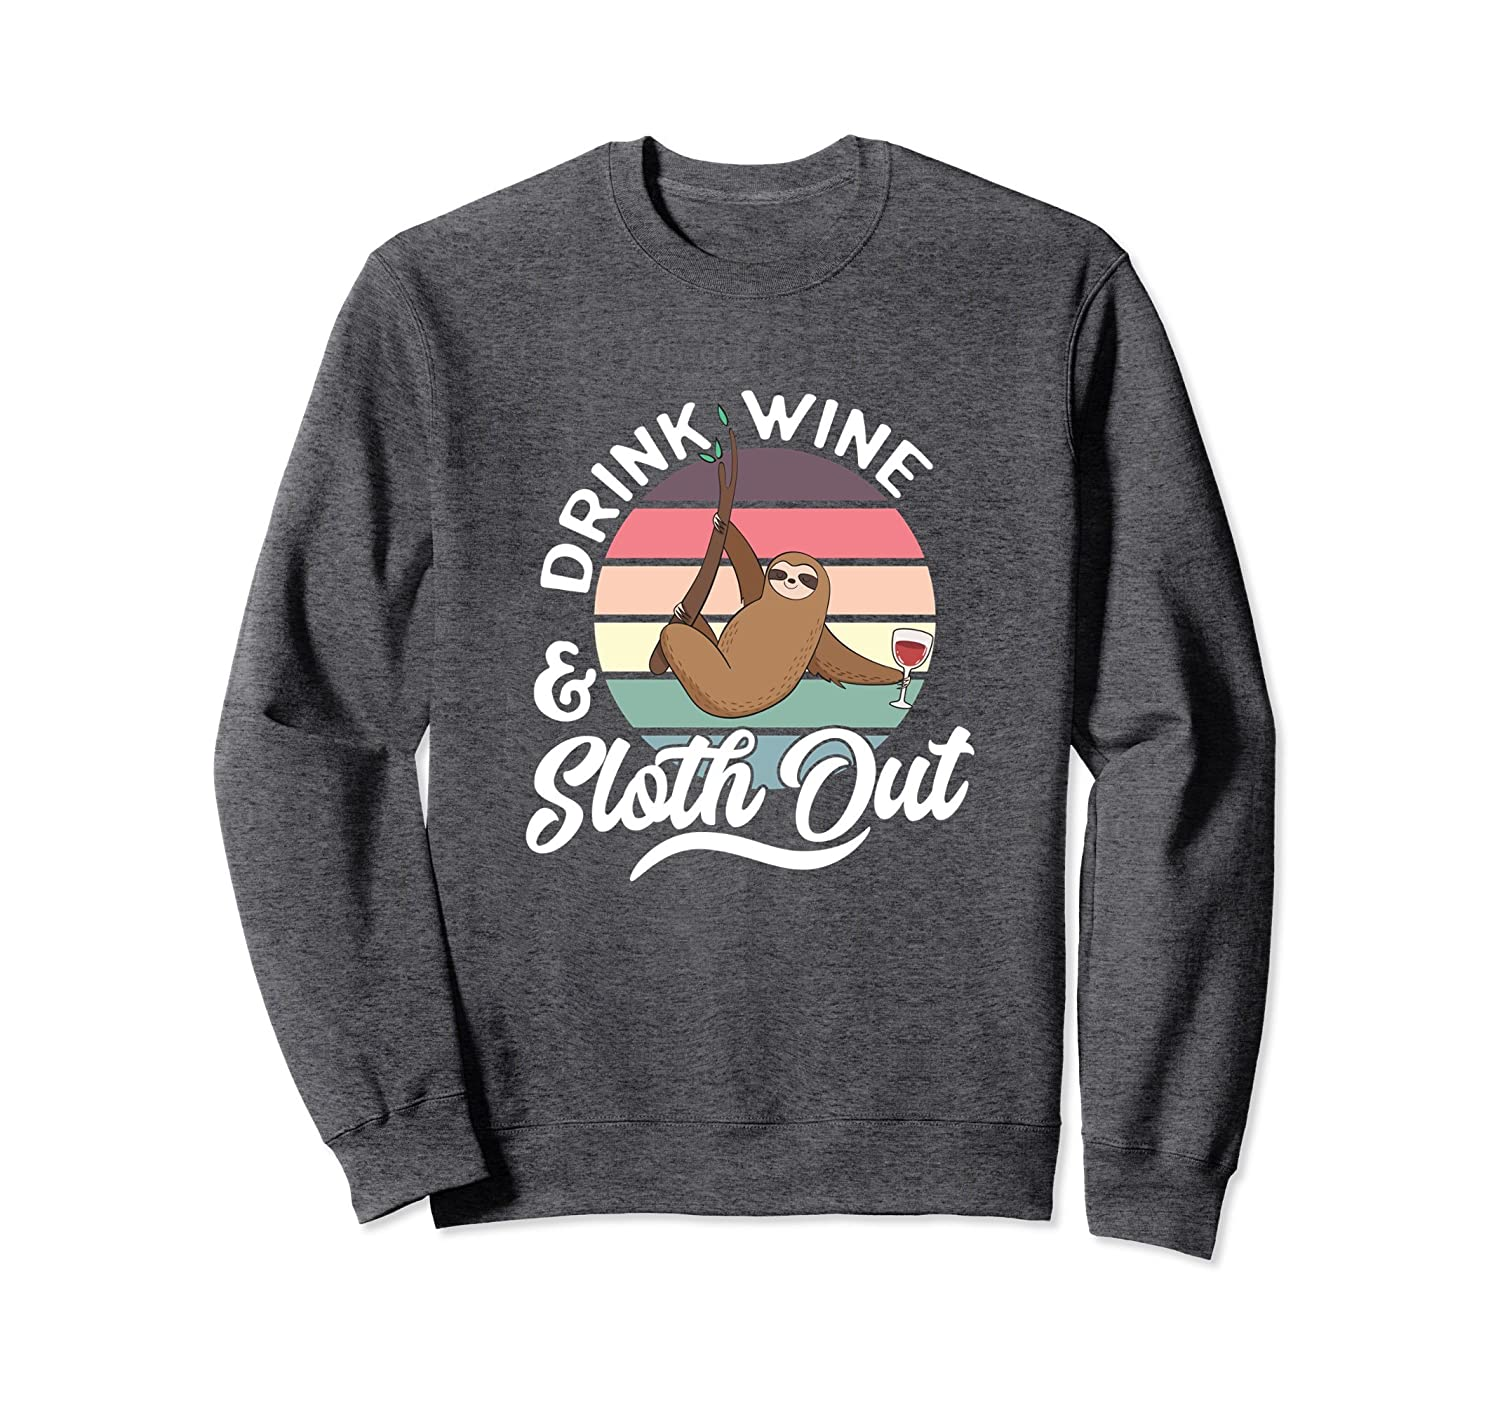 Sloth Sweatshirt Women Mothers Day Funny Graphic Pullover-Colonhue